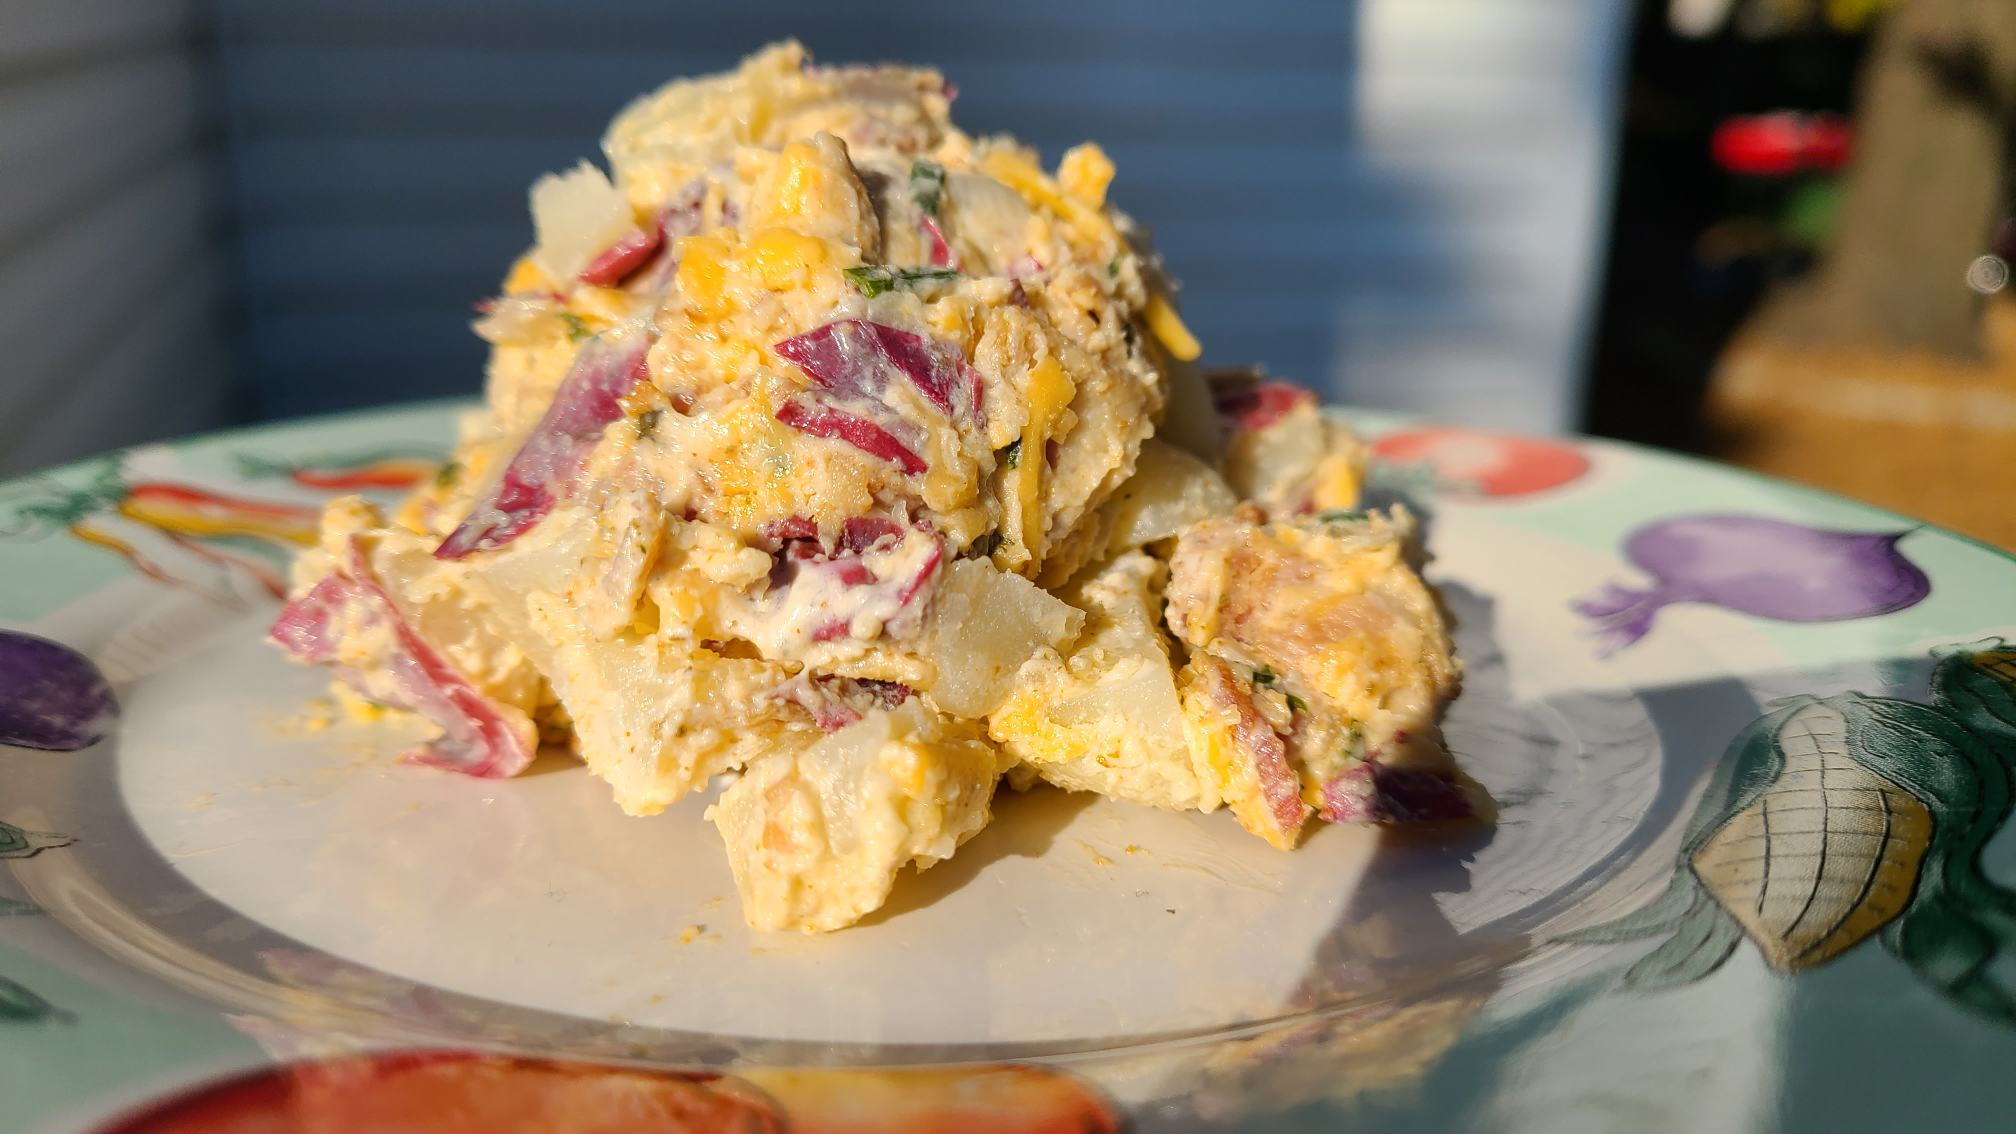 Image of loaded potato salad from recipe on plate